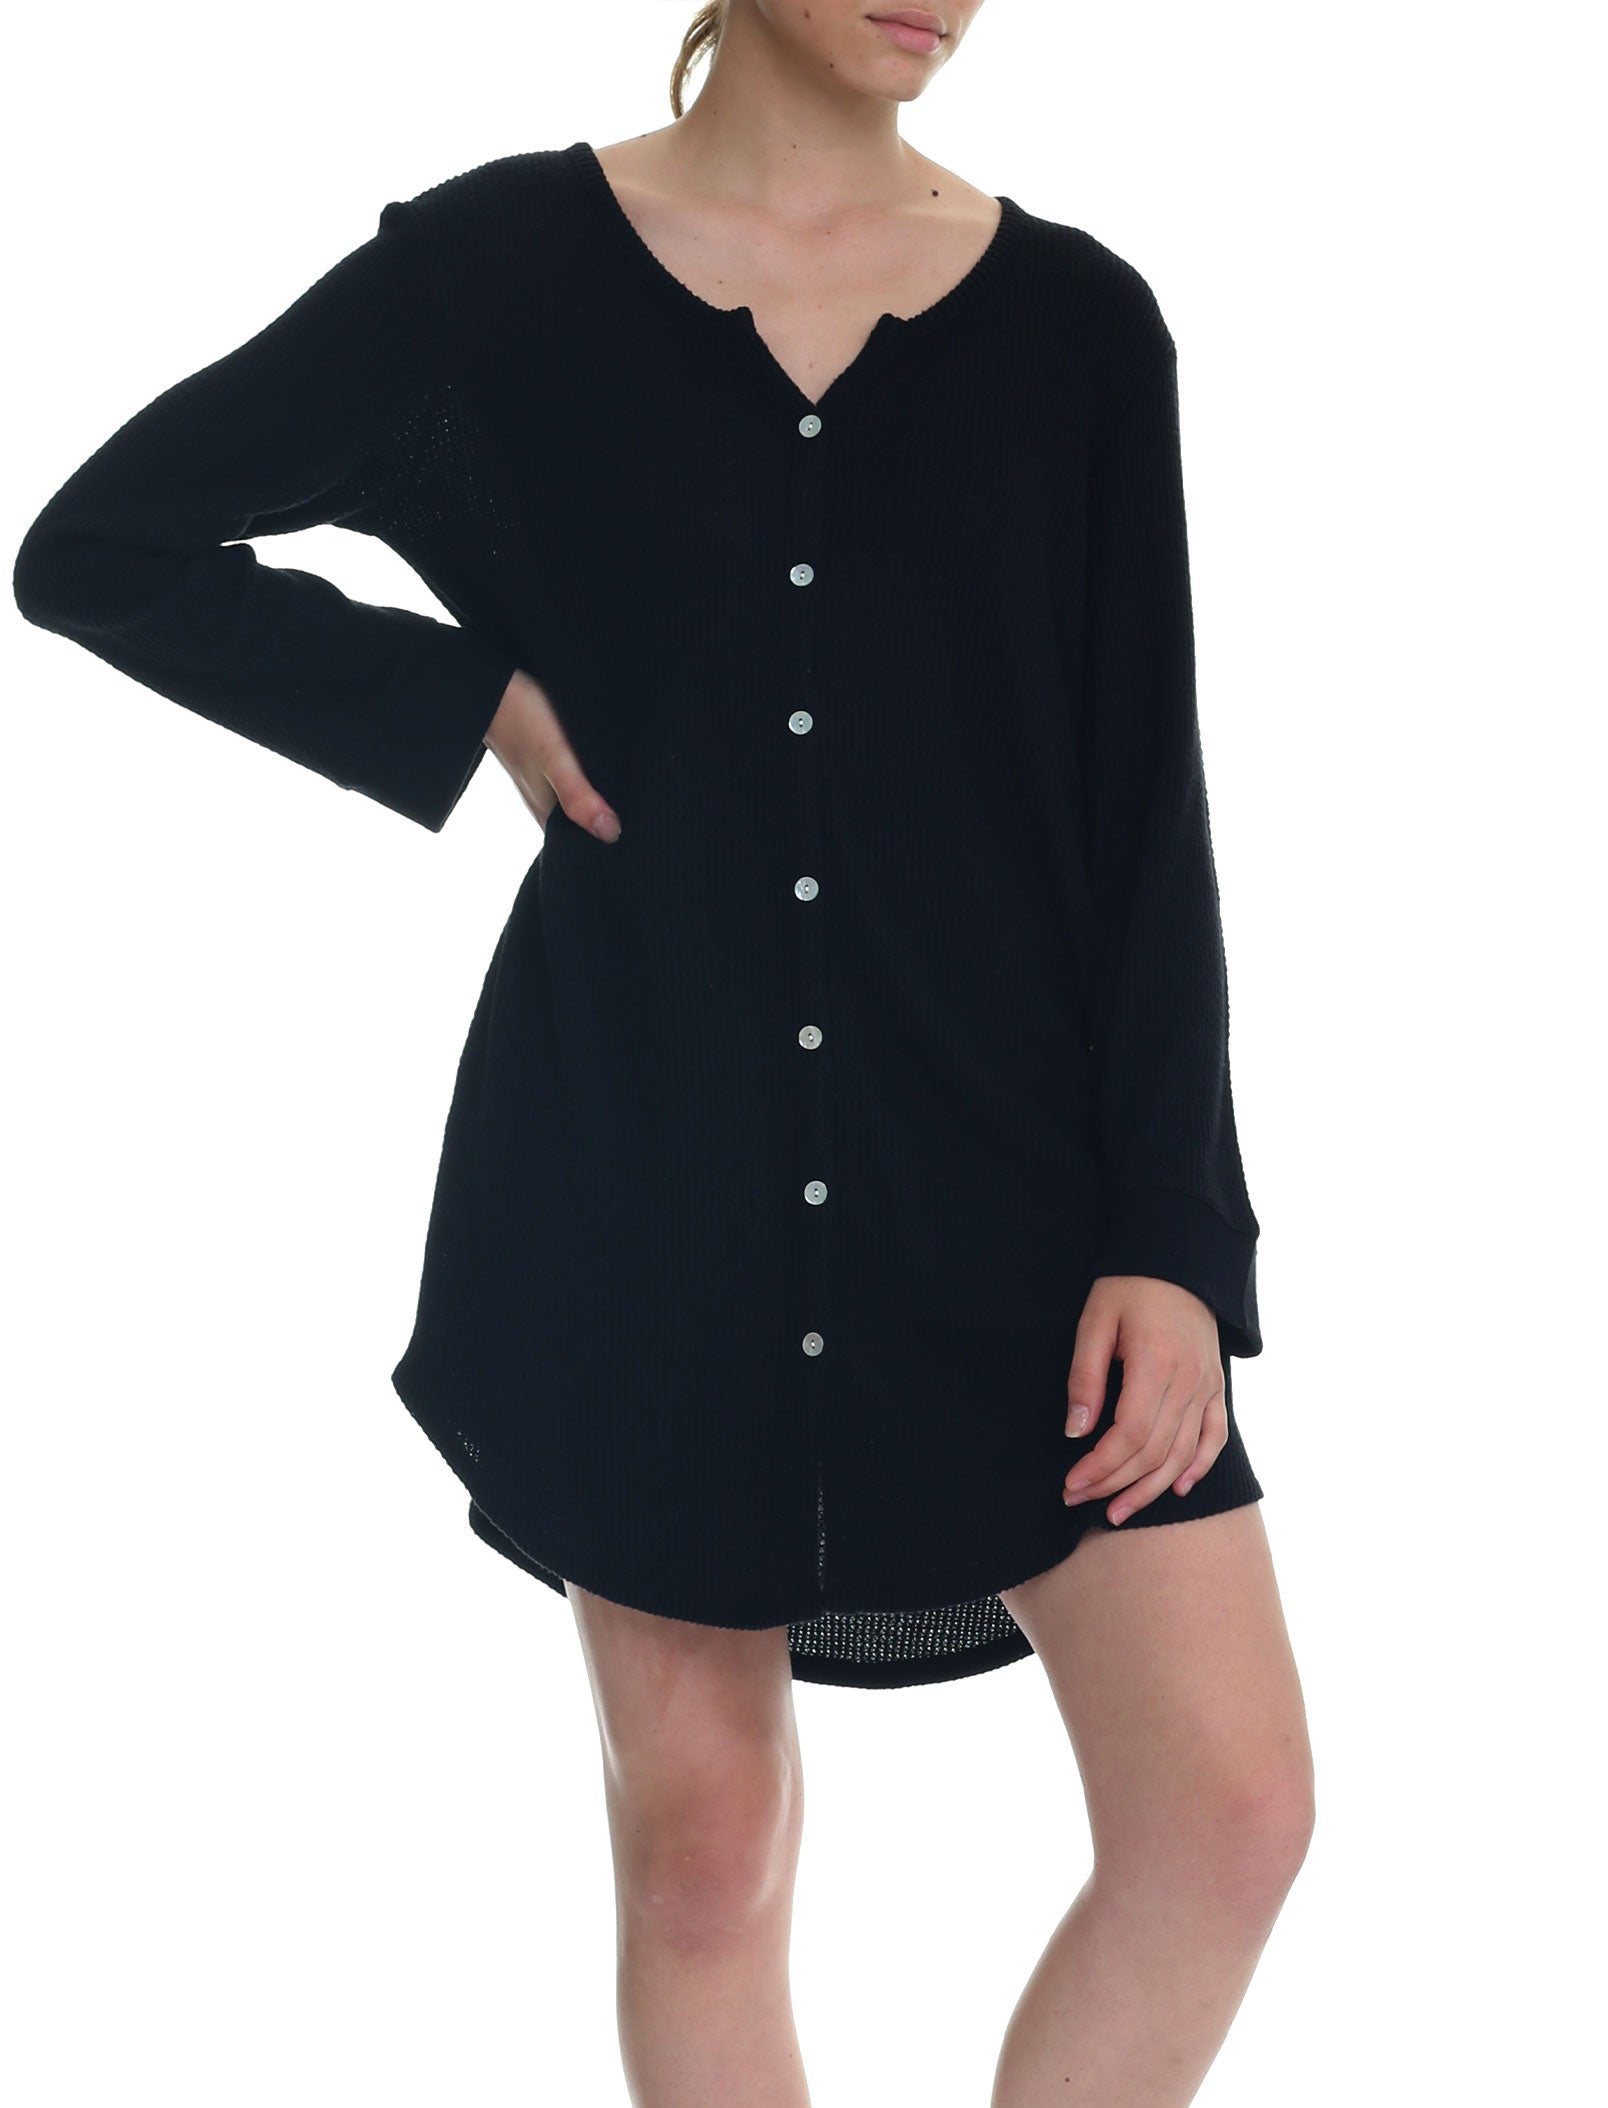 Super Soft Waffle Nightgown in Black